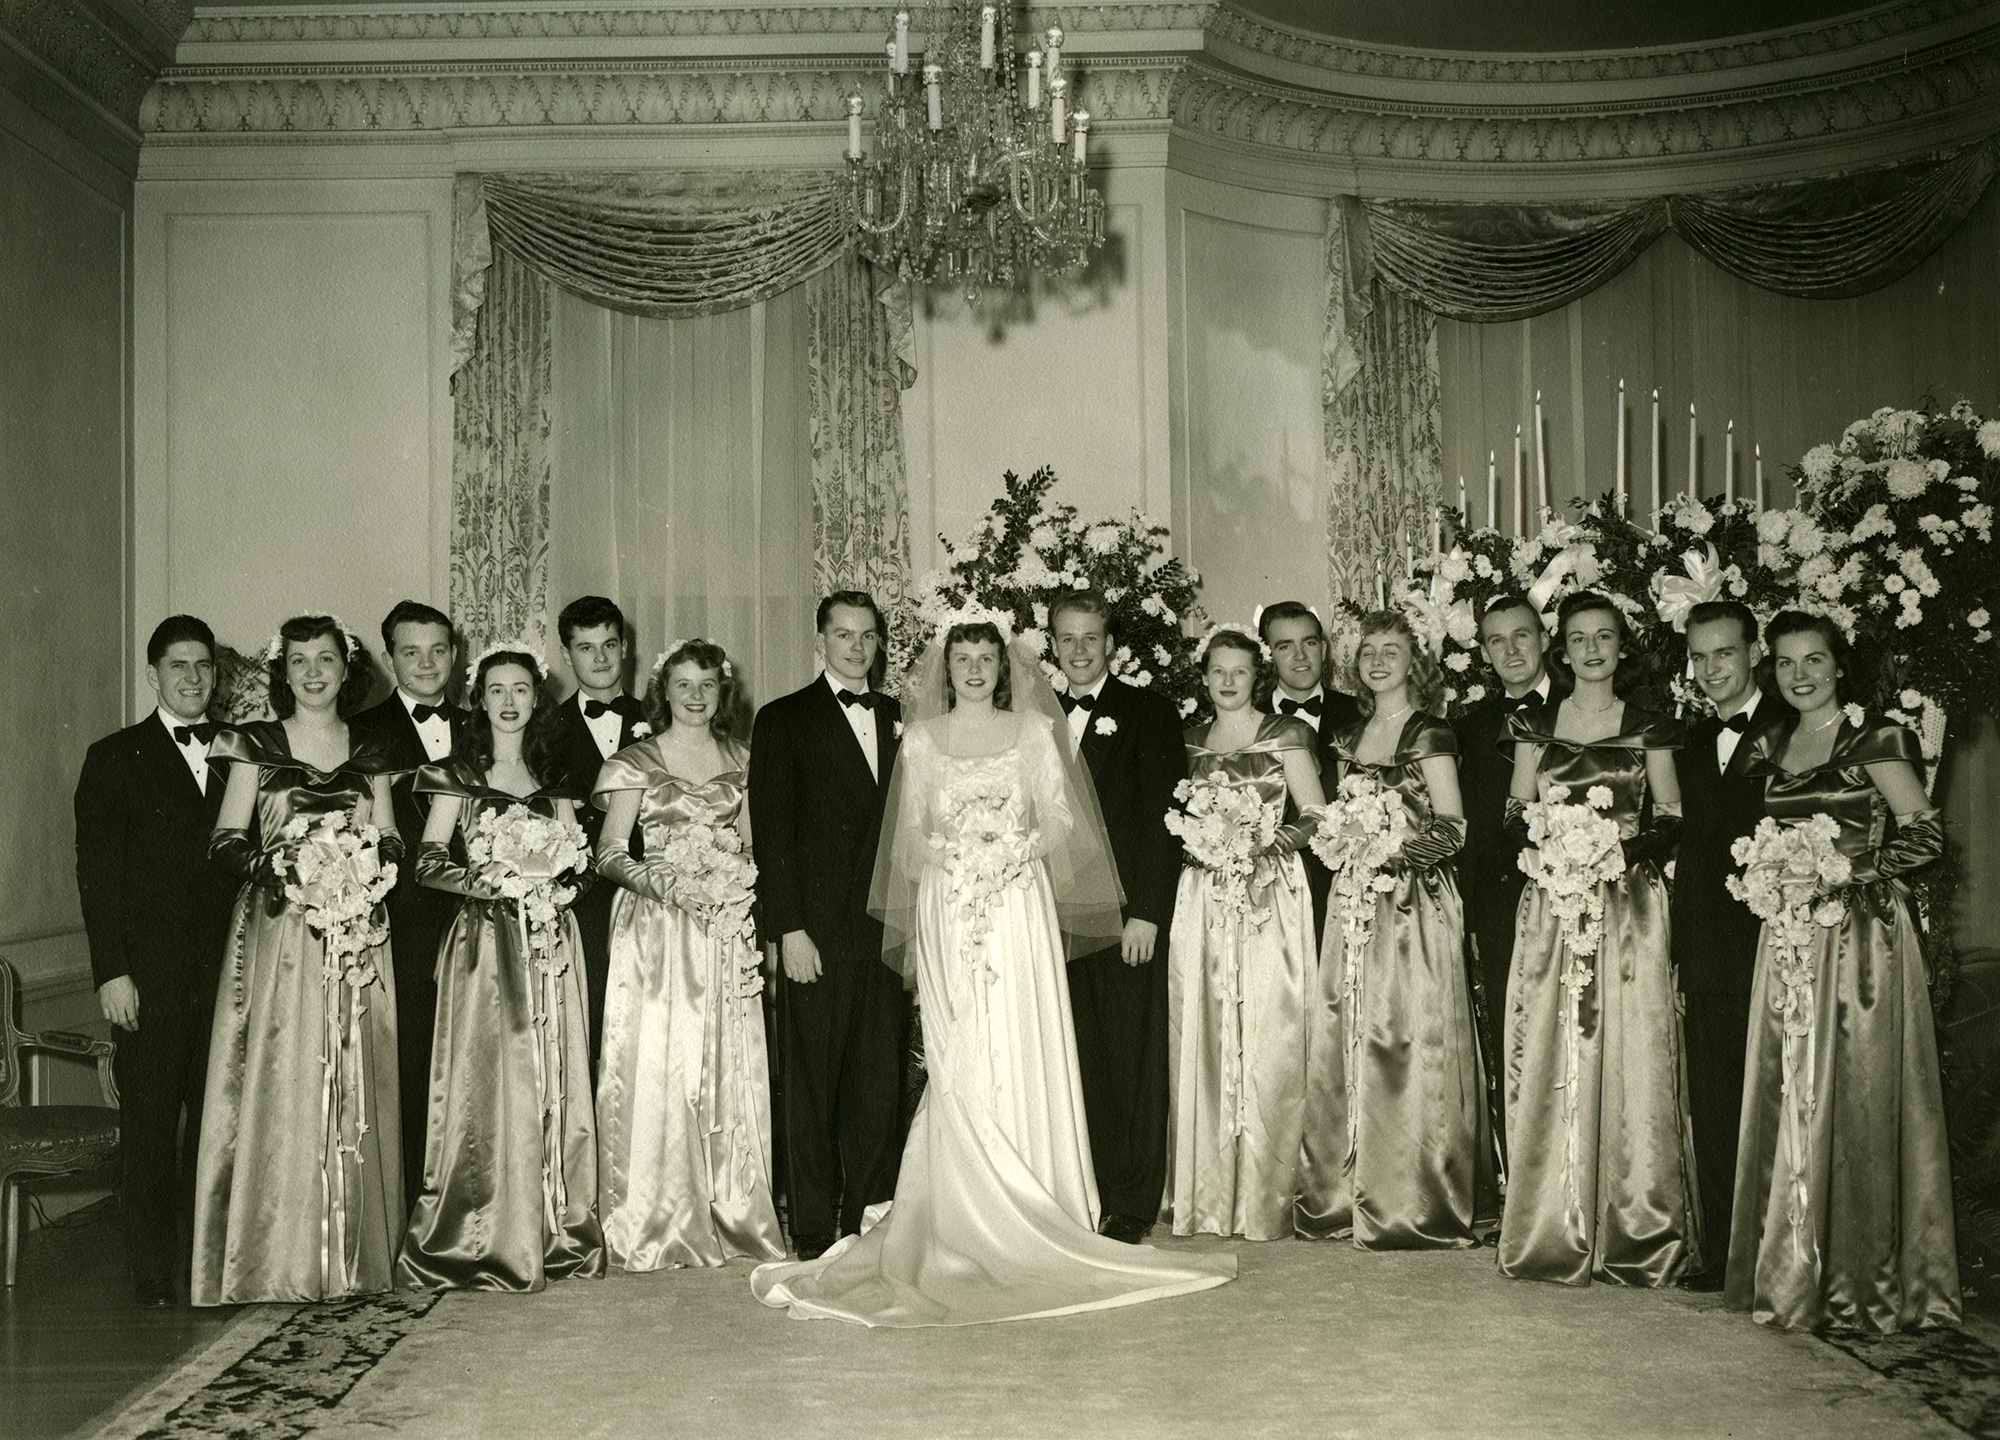 One unique event that happened at the Mansion during the Maw years was a wedding.